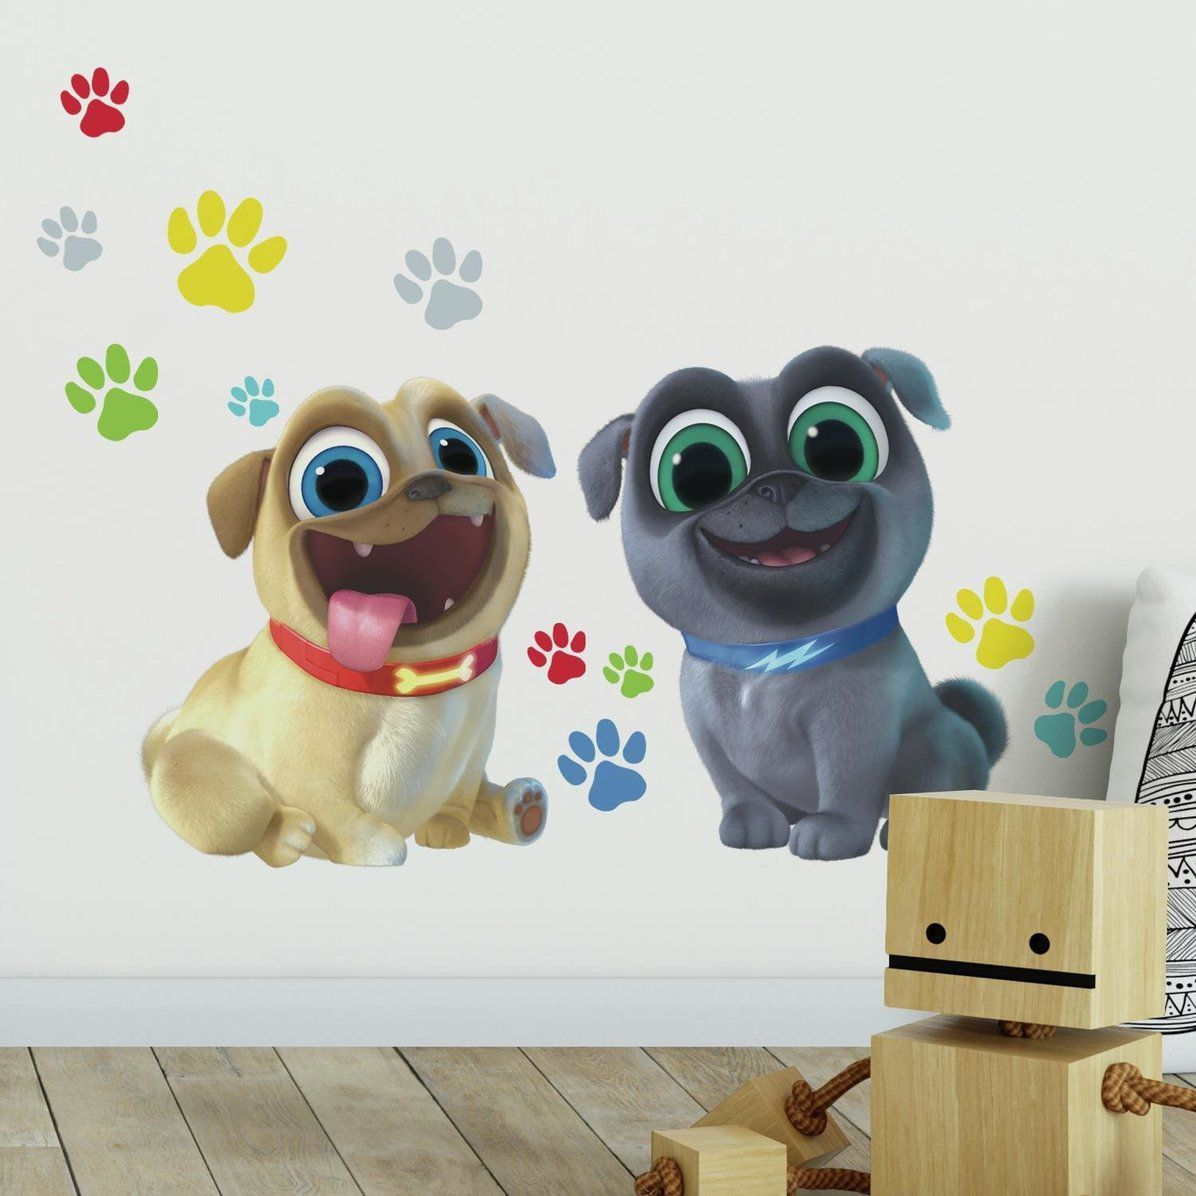 Puppy Dog Pals Peel And Stick Giant Wall Decals 13 Pieces Dog Paw Print Puppies Pug Dog